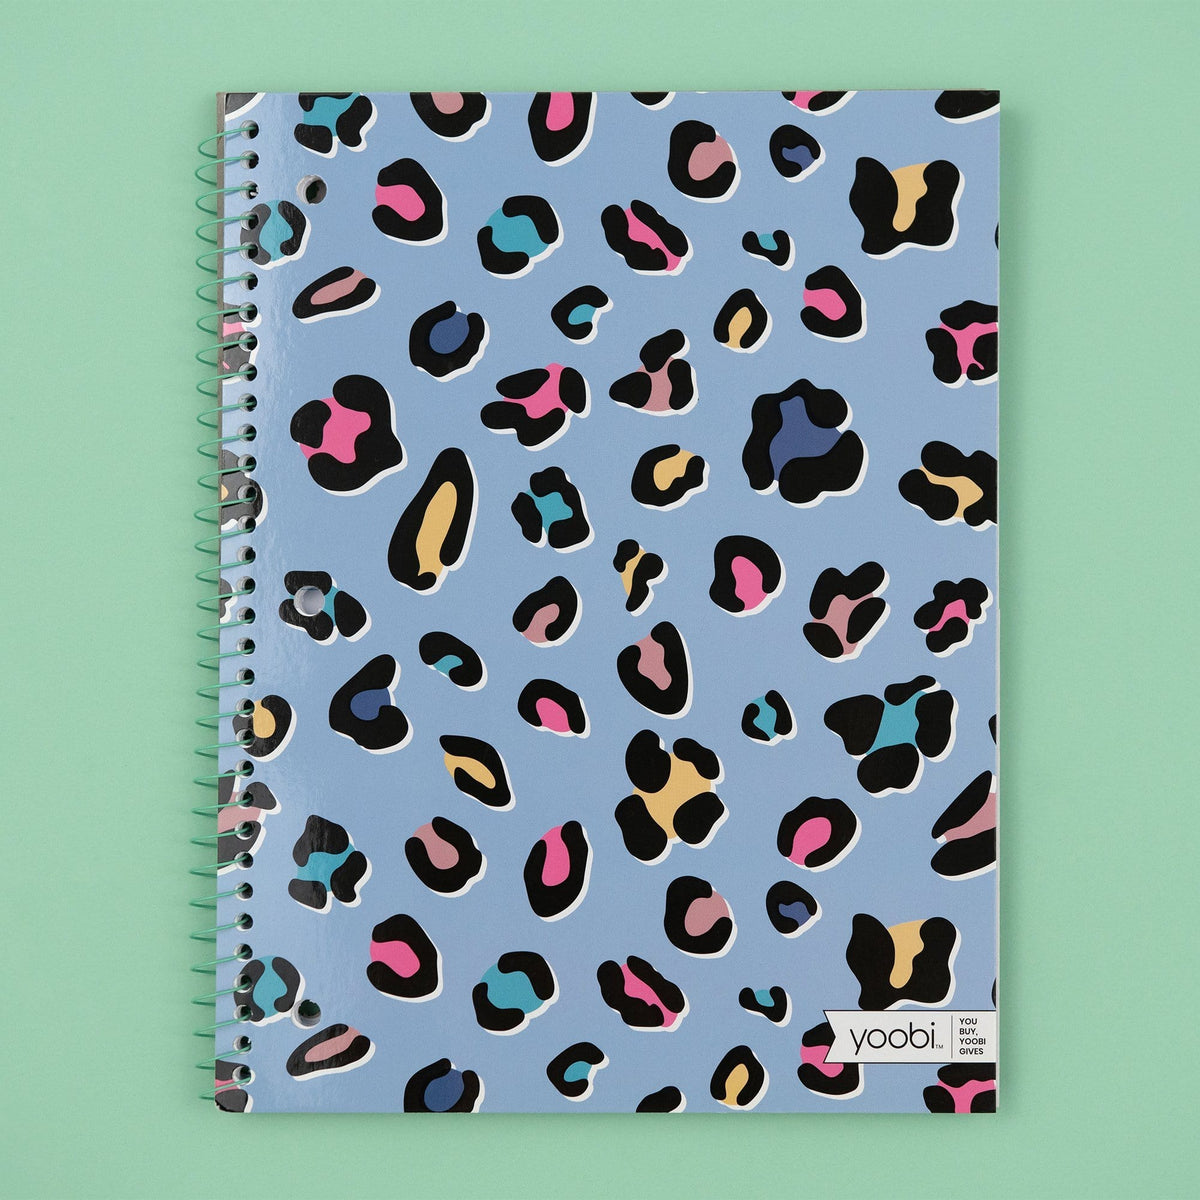 Spiral Notebook, College Ruled - Cheetah Print - Yoobi